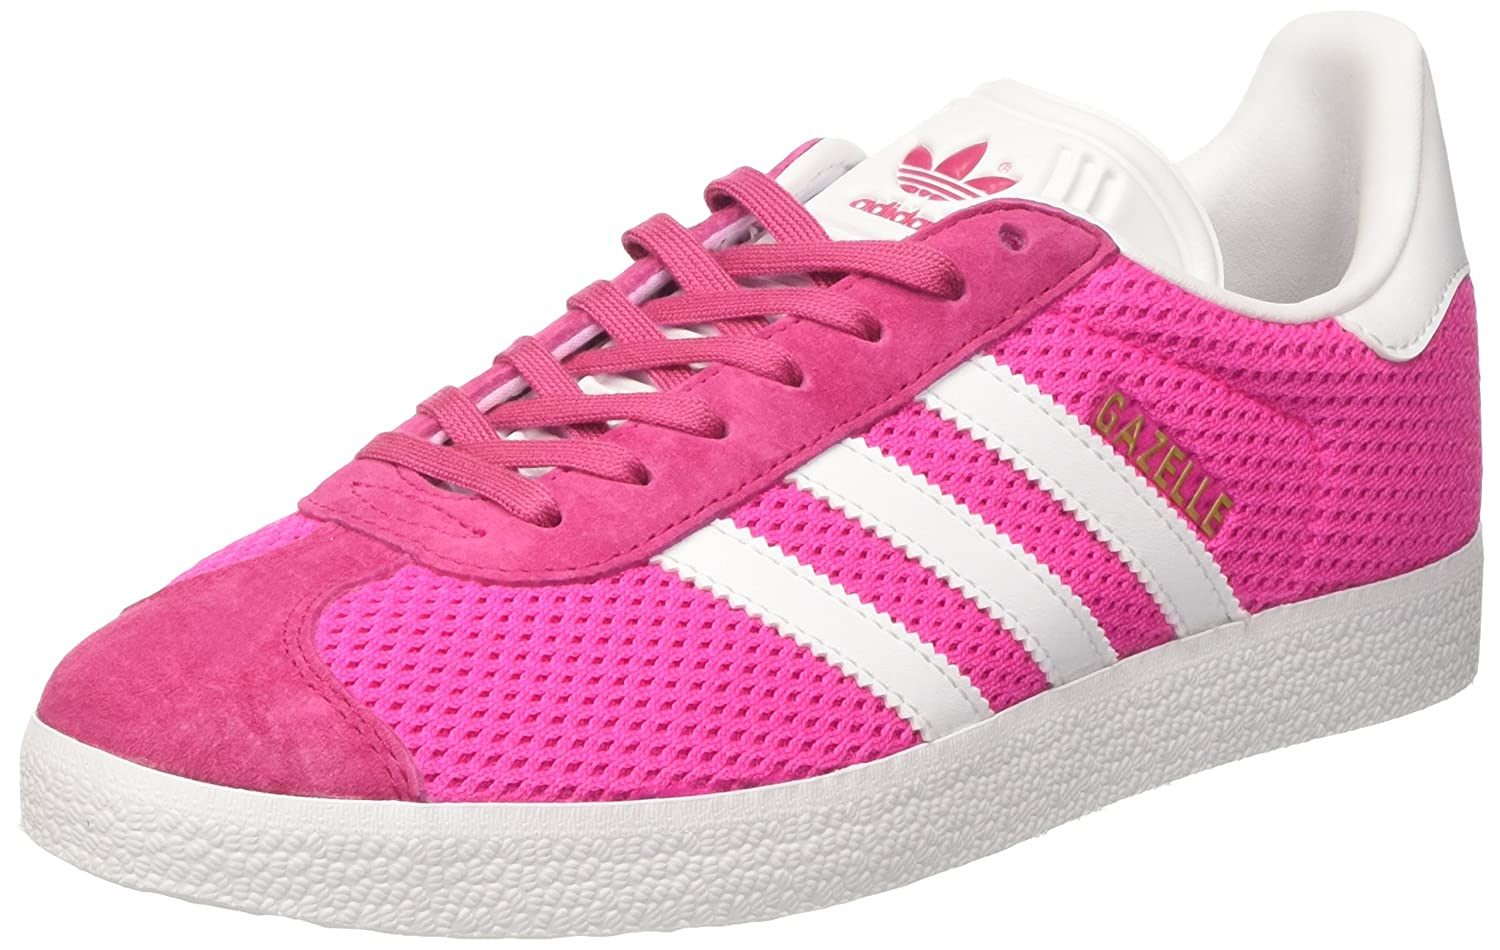 Adidas Originals Gazelle, Zapatillas de Deporte Unisex Adulto 41 1/3 EU|Varios Colores (Shock Pink/Footwear White/Shock Pink)